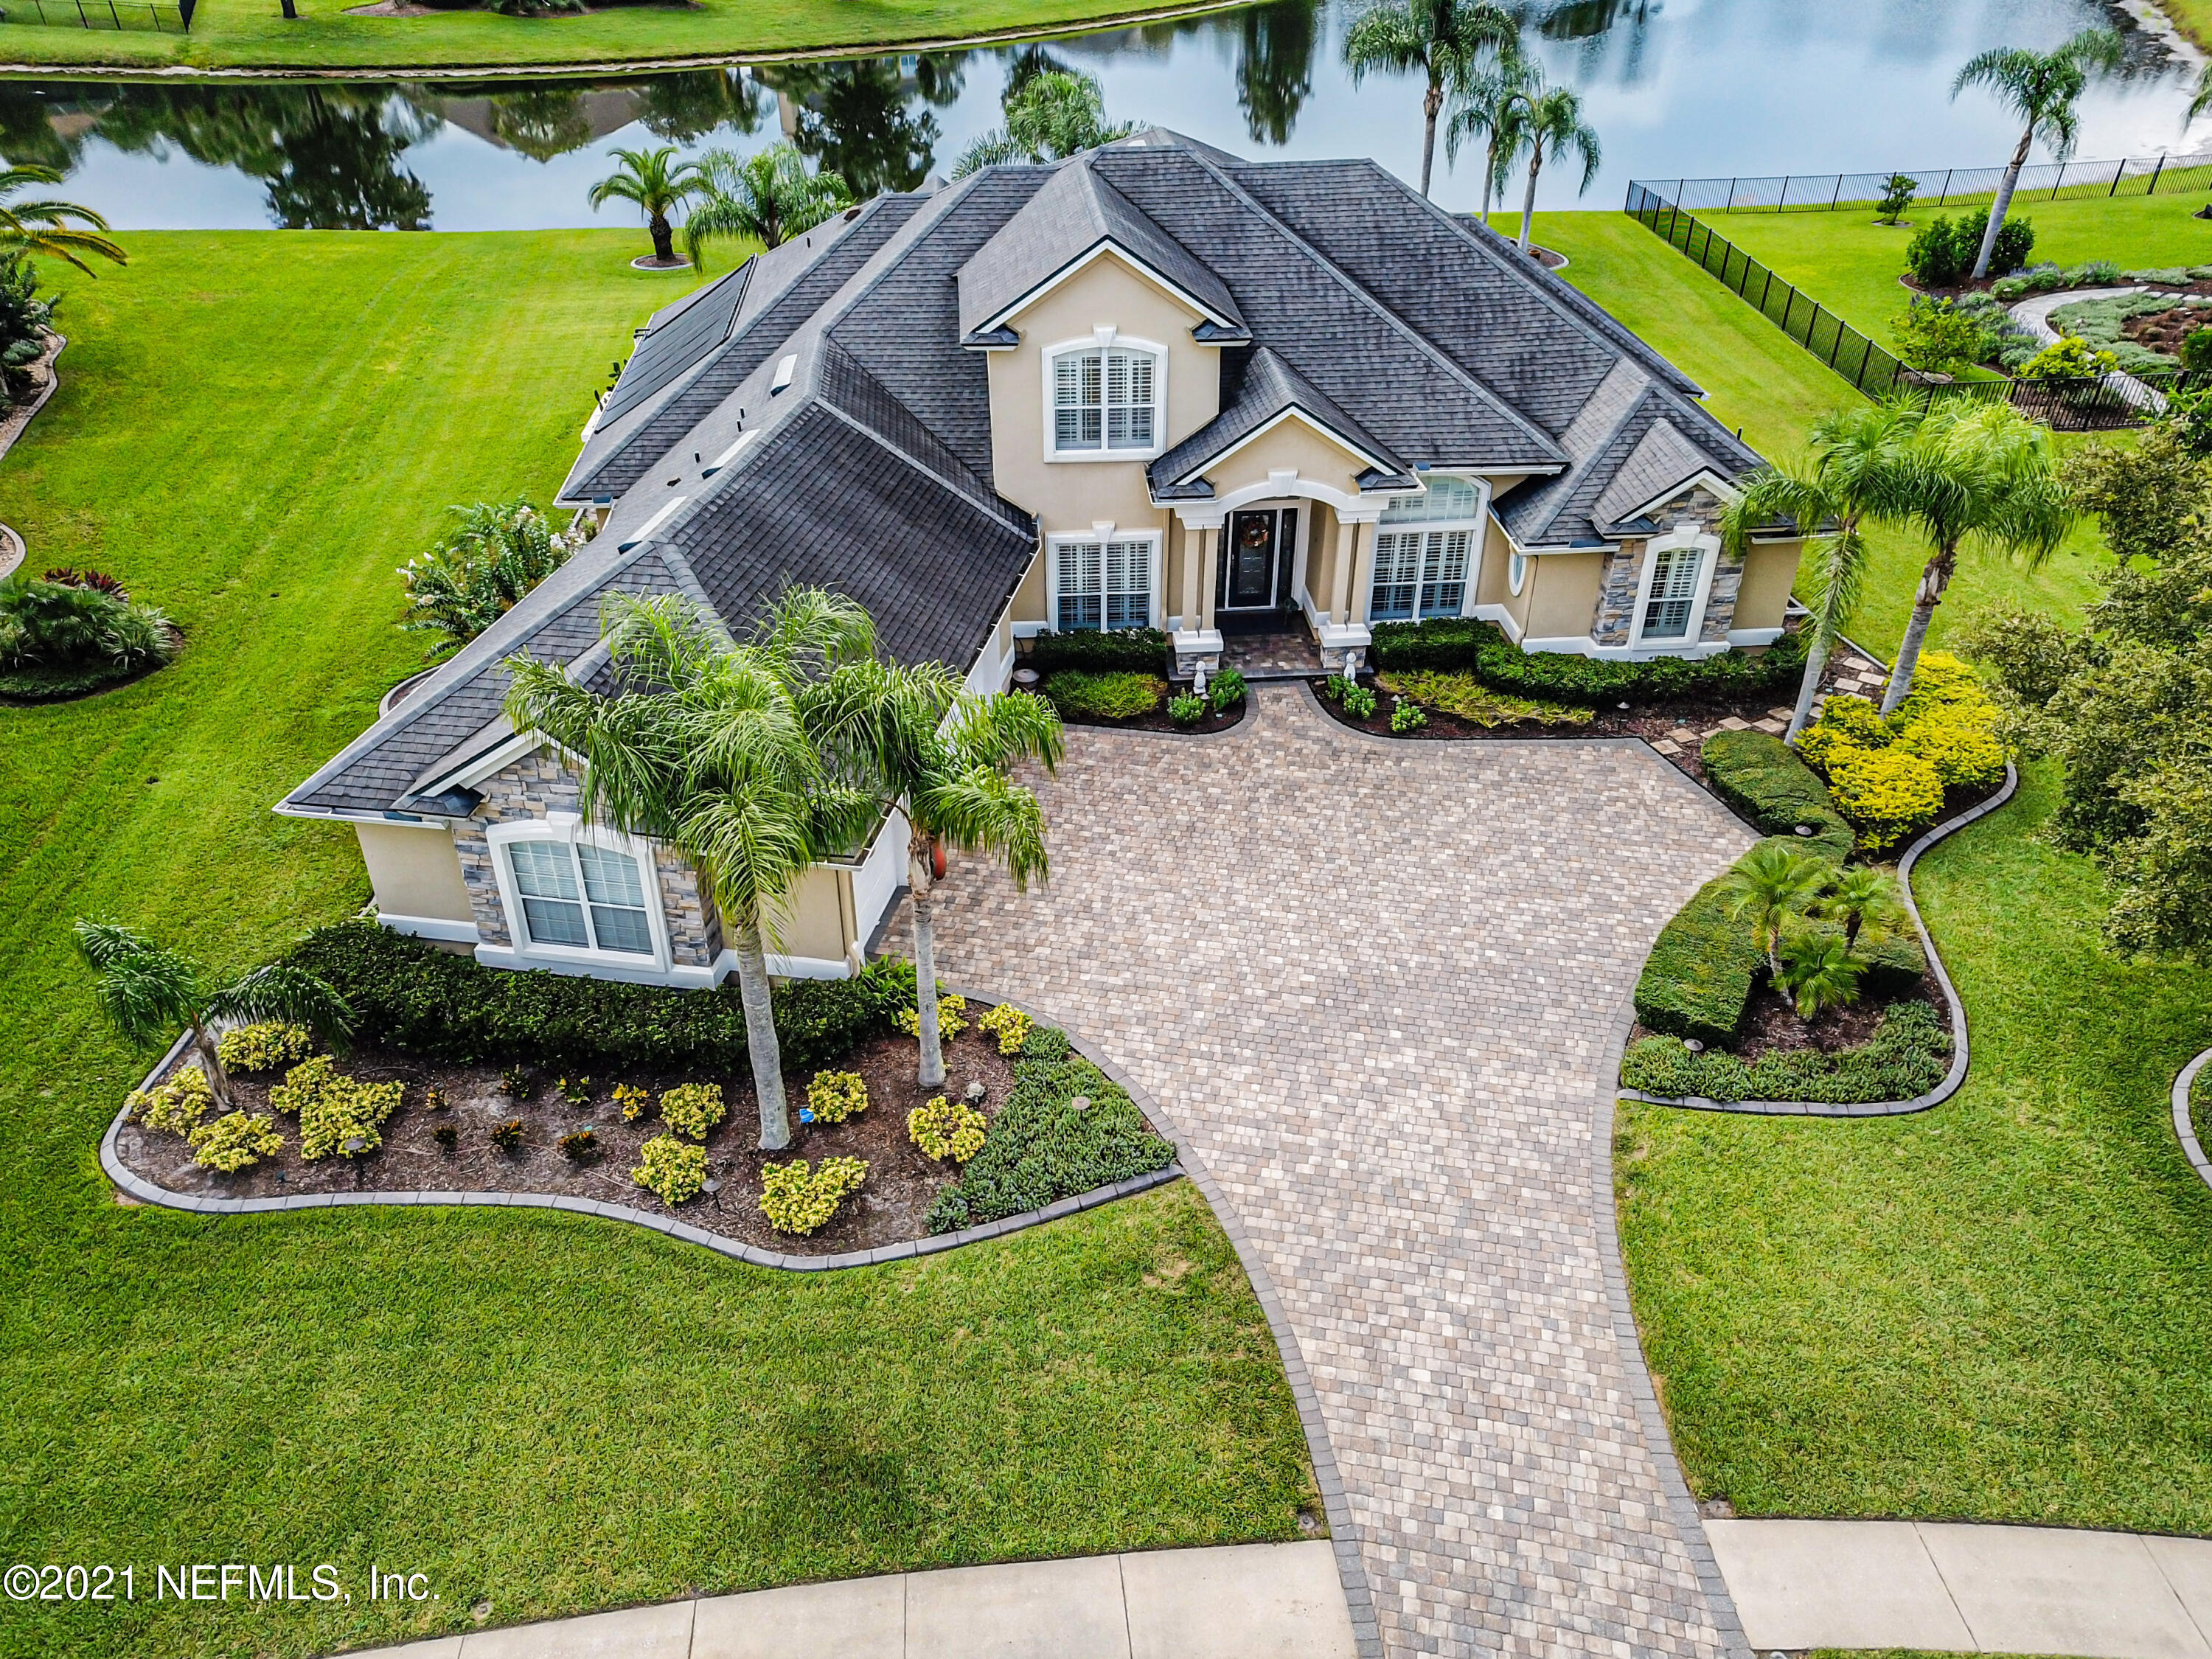 ''There's no place like home.'' That's how the saying goes, and it rings true with this one of a kind home in the sought after community of Bartram Plantation. Boasting more than a half acre lot with a beautiful lake view over the screened in pool, it truly has everything. From the private guest suite upstairs with adjoining bonus room (mother in law suite), to the main floor master bedroom suite with direct patio access separated from the guest bedrooms with jack and jill bath. From the time you walk in you look forward to finding out what's around the next corner. The main floor from front to back includes a formal dining room, office with french doors, Master bedroom, pool bath, living room, Kitchen & Family Room combo, pool view breakfast nook, & guest bedrooms with jack and jill bath. The laundry and drop area connects the oversized 3 car garage to the home. The stairs lead up to a full bathroom, guest bedroom with vaulted ceilings, and extra large bonus room with walk out balcony. The Patio and Pool area is the true focus of the home and is sure to make lots of memories with friends and family. There's a nice sized covered area to enjoy the afternoon thunderstorm out of the rain. The decking is paver with a crystal blue color of the extra large swimming pool. All of this inside a well built screen cage.